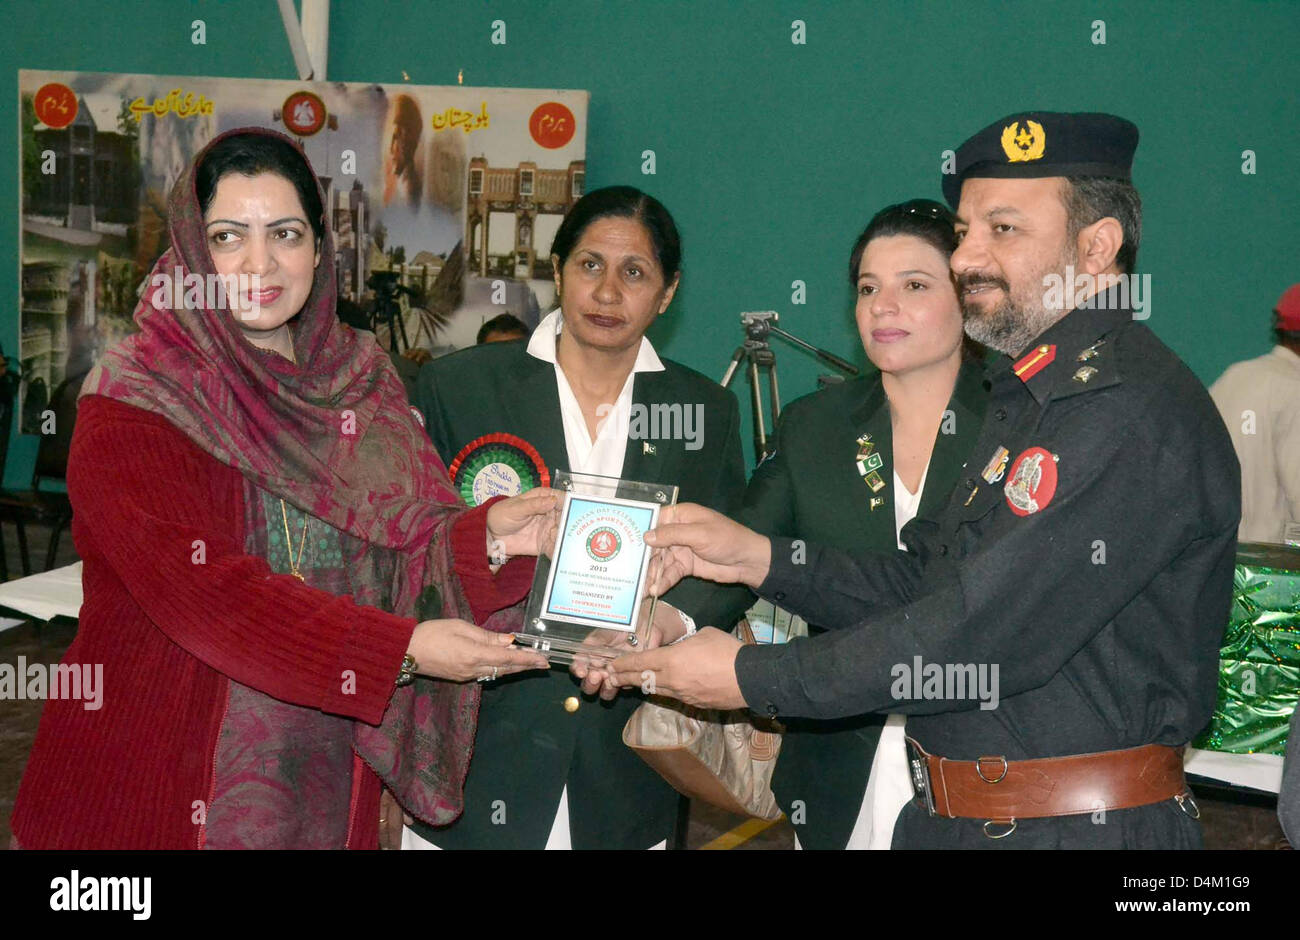 Ghazaband Scouts leader, Colonel Maqbool Shah presents